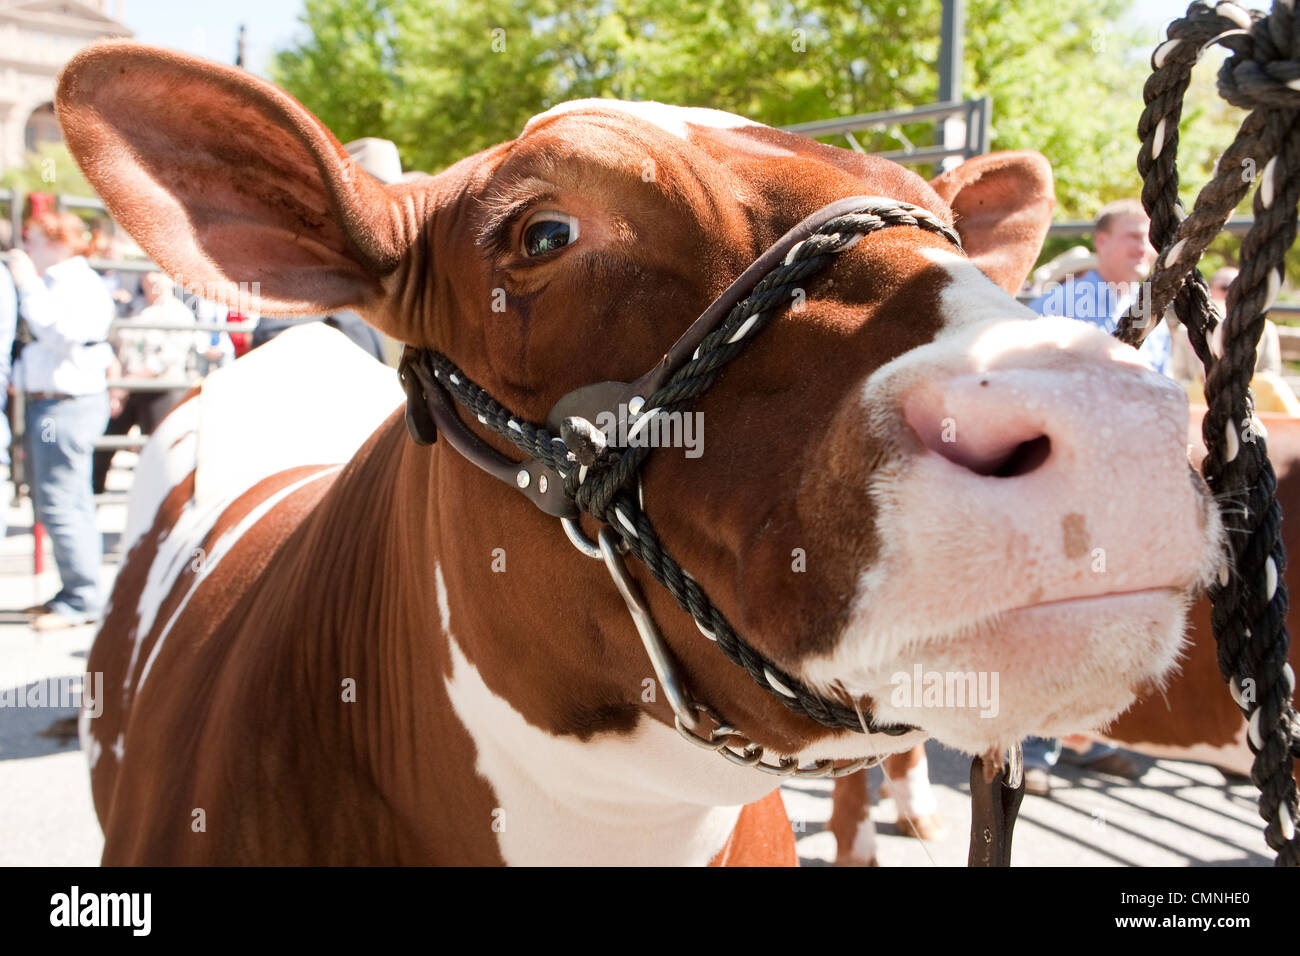 Close-up of white and brown spotted Grand Champion Steer at Star of Texas Rodeo in Austin - Stock Image